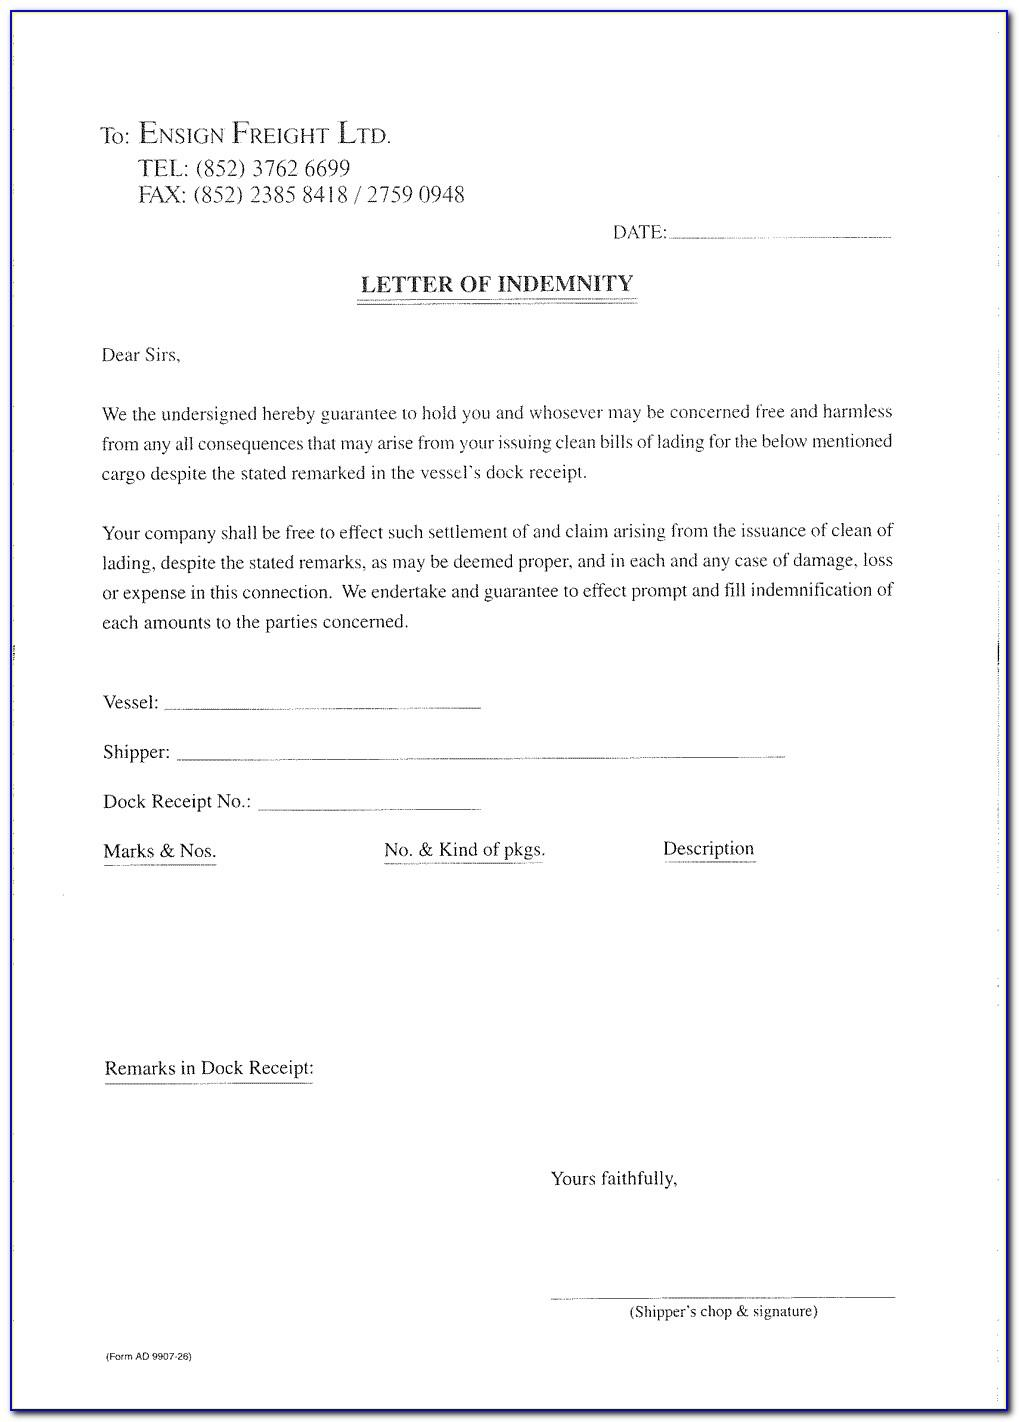 Letter Of Indemnity Sample Malaysia